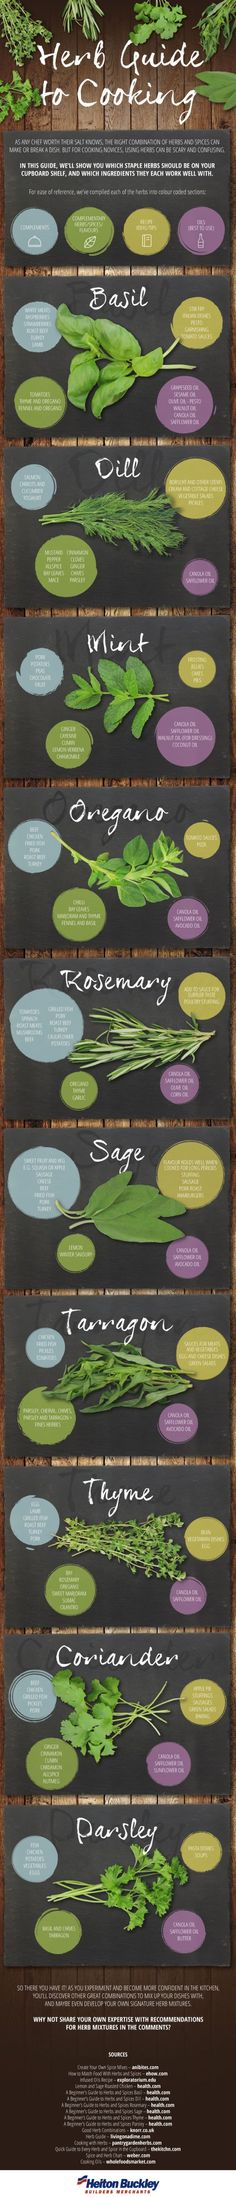 This Infographic Tells you How to Best Use Herbs in Your Cooking #Infographic #Cooking #Herbs